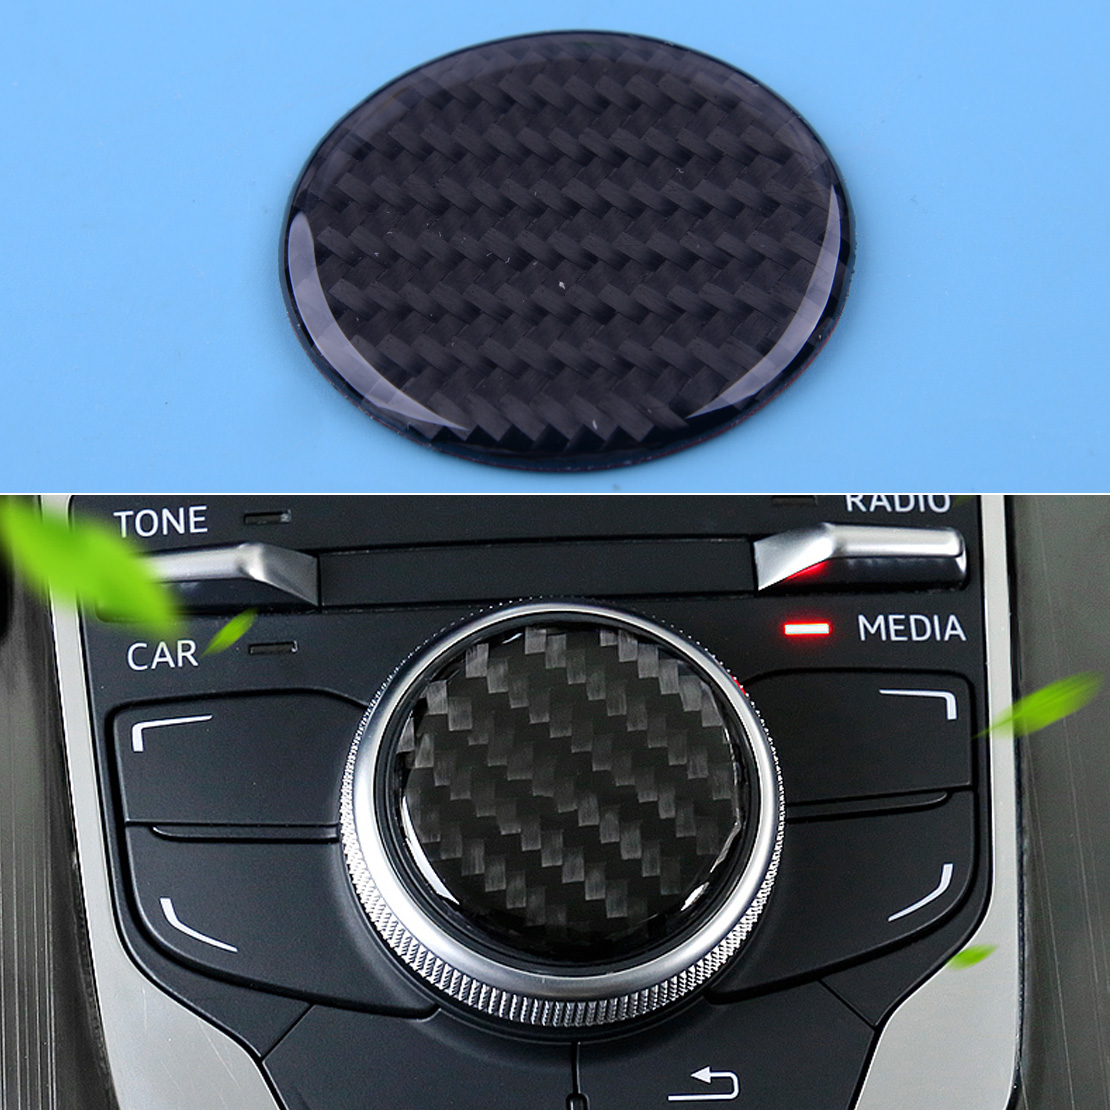 CITALL NEW Carbon Fiber Black Car Multi-Media Control Knob Decor Sticker Fit For Audi A3 S3 8V 2014 2015 2016 2017 2018 2019 image